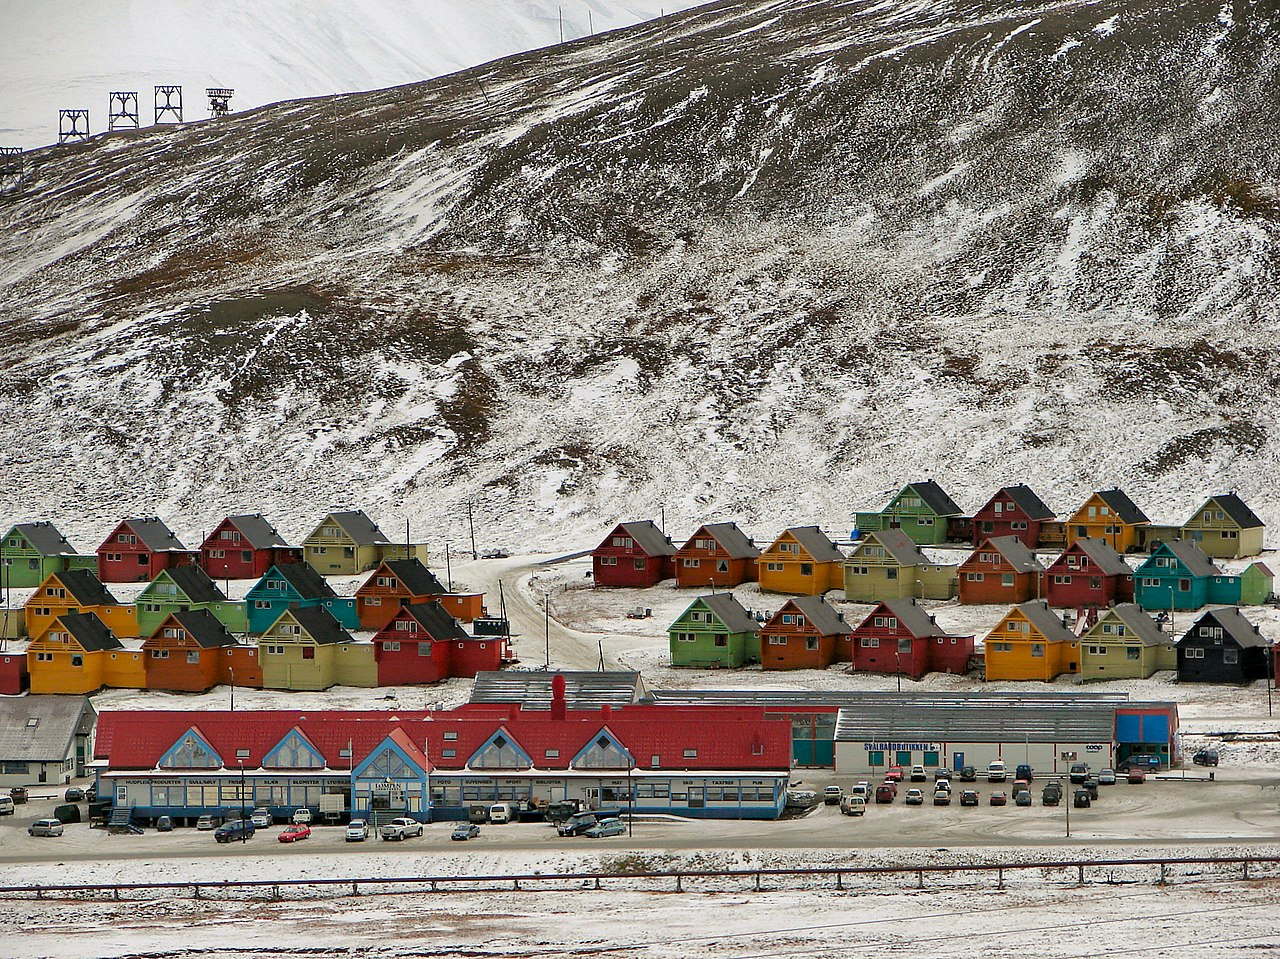 The town centre of Longyearbyen before the 2015 avalanche that destroyed many of the houses